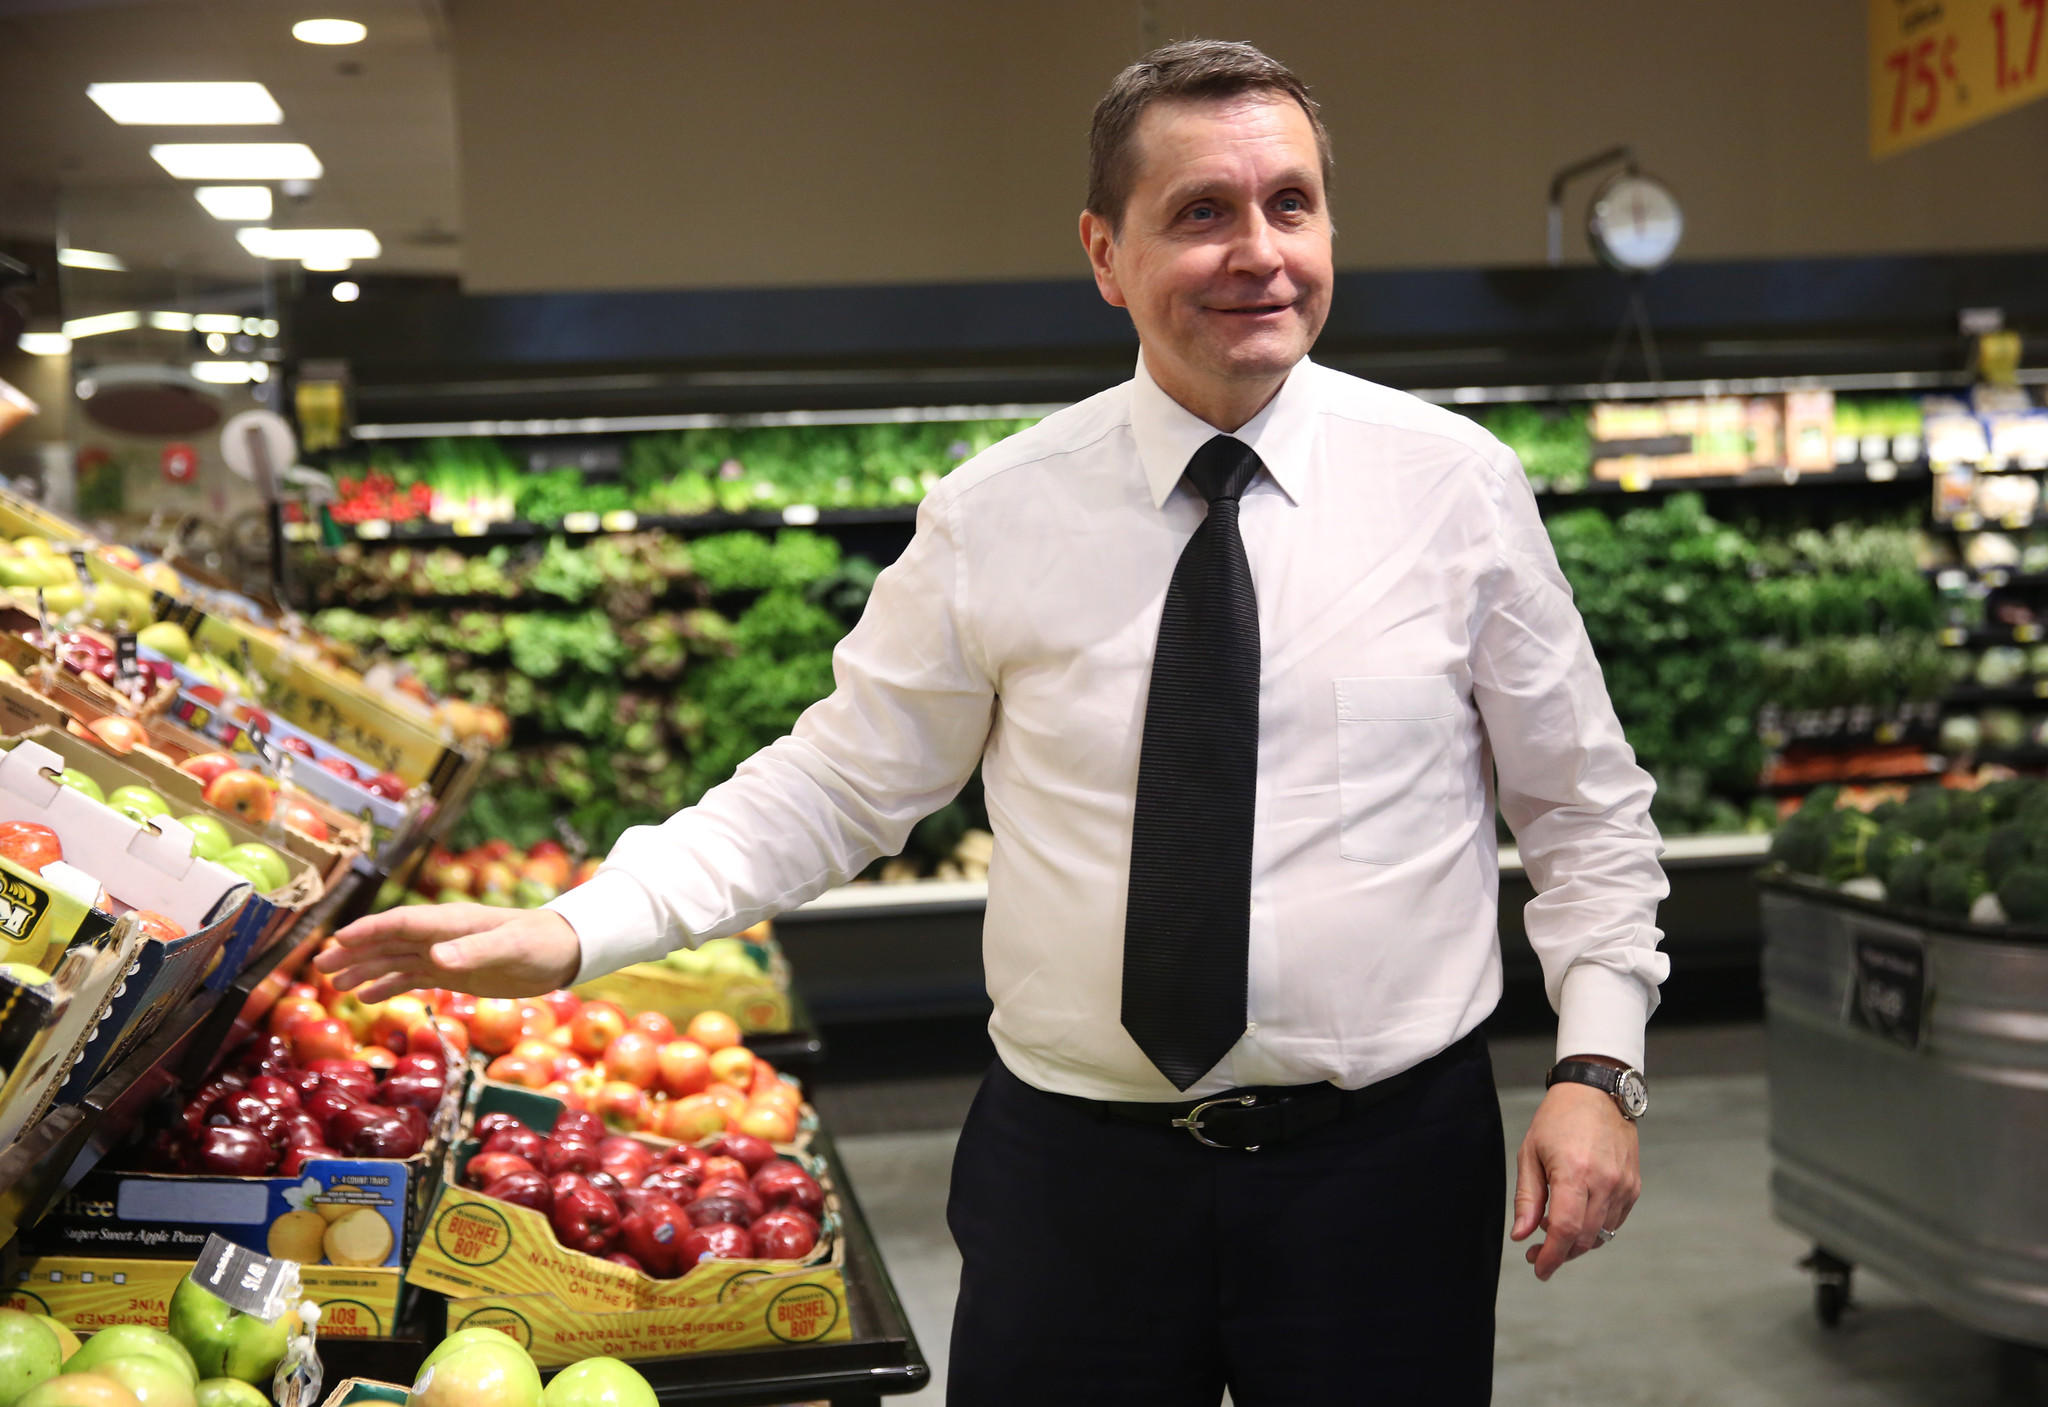 Mariano's CEO Bob Mariano at the grocery store's flagship location at 40 S. Halsted in Chicago on Dec. 3.